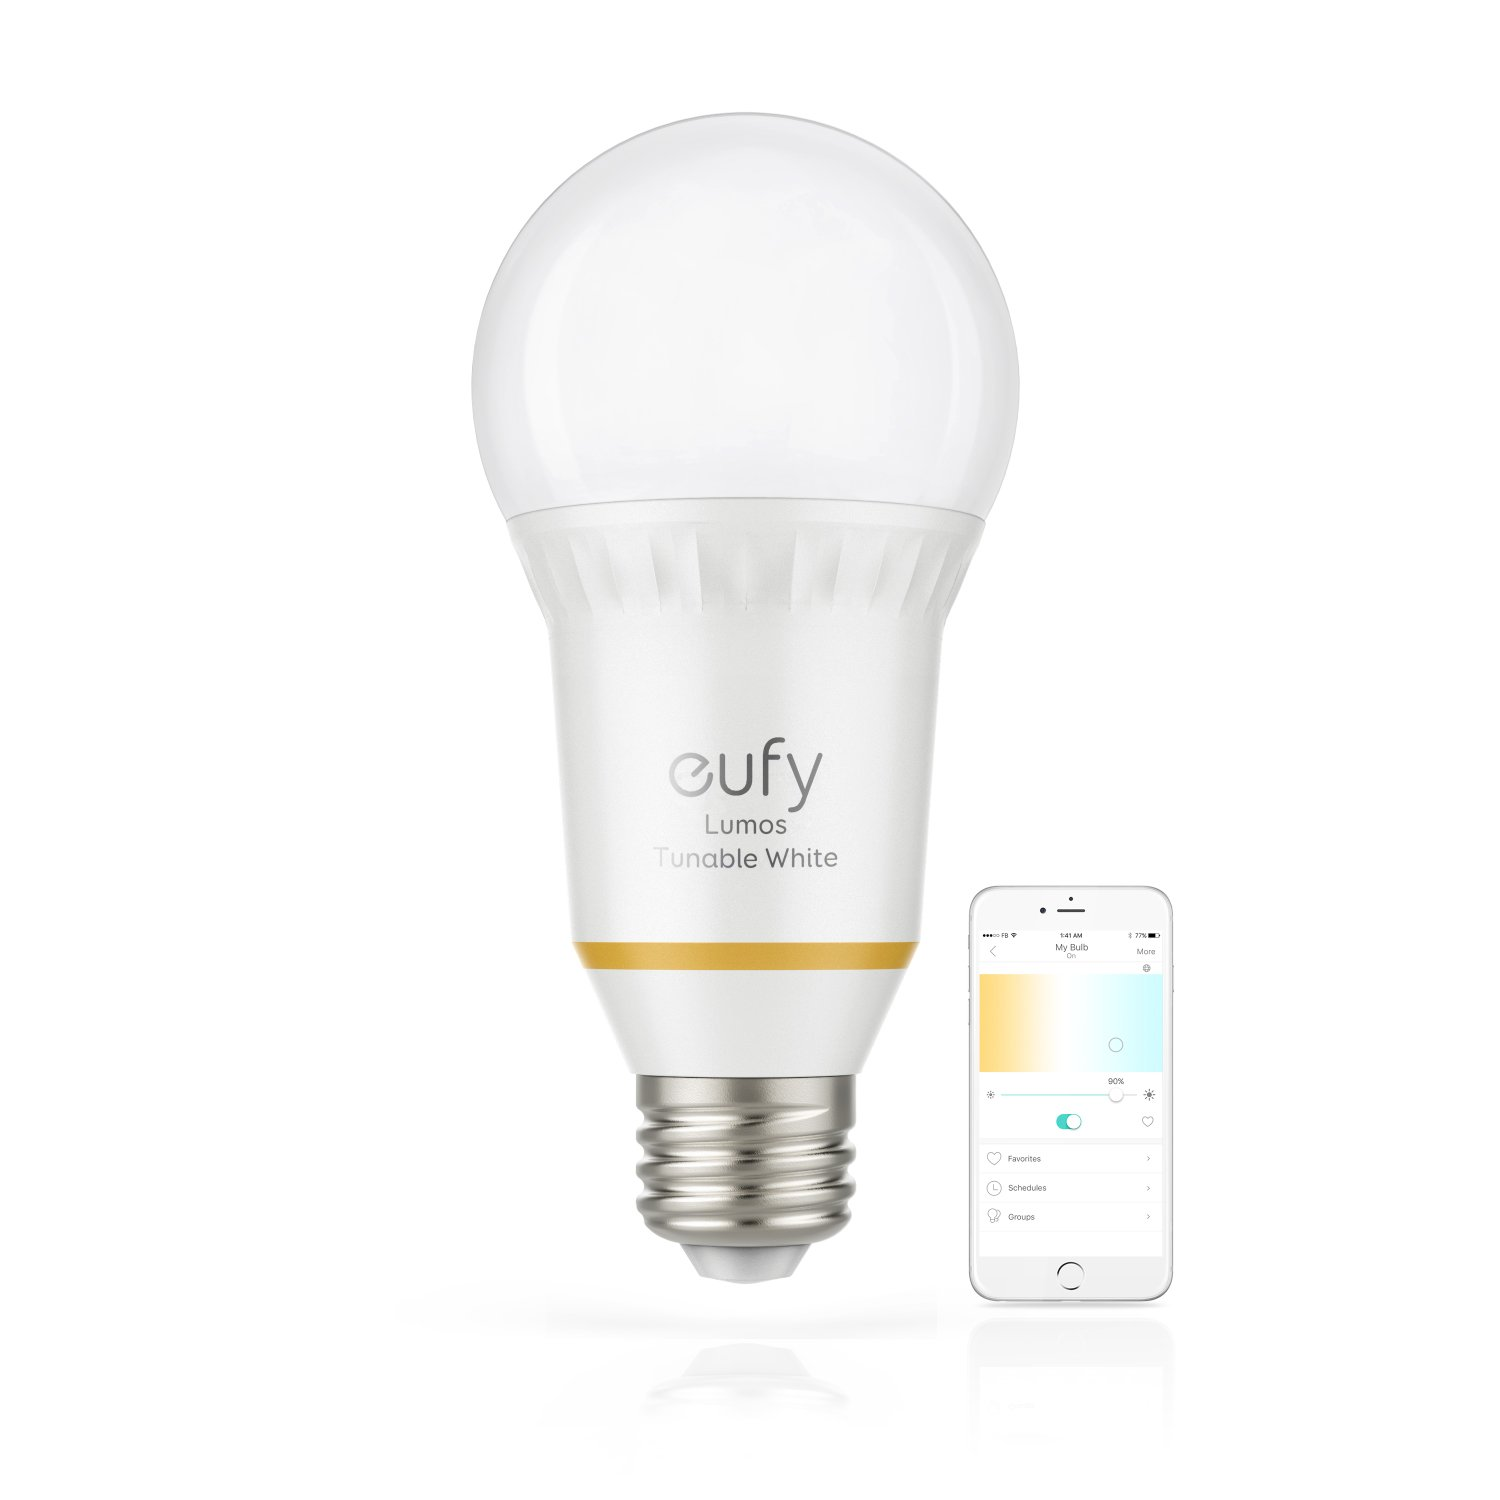 eufy Lumos Smart Bulb By Anker- Tunable, Soft White To Daylight (2700K-6500K), 60W Equivalent, Works With Amazon Alexa & Google Assistant, No Hub Requires, Wi-Fi, Dimmable LED Light Bulb, 9W, A19, E26